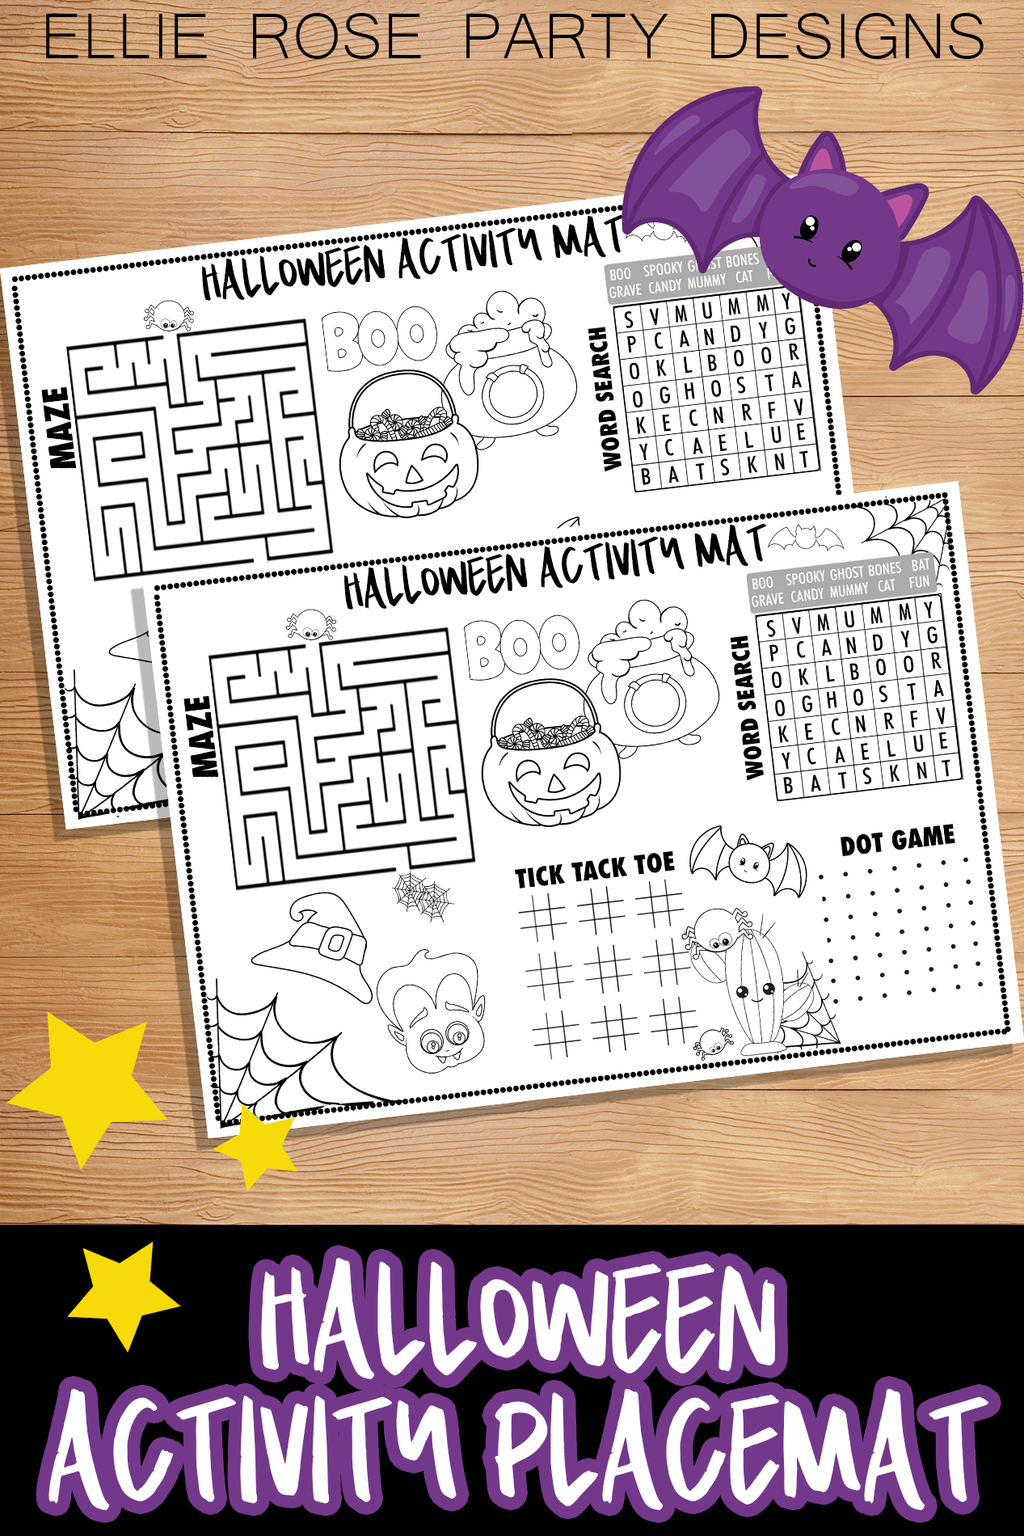 Halloween Activity Coloring Placemat [INSTANT DOWNLOAD]